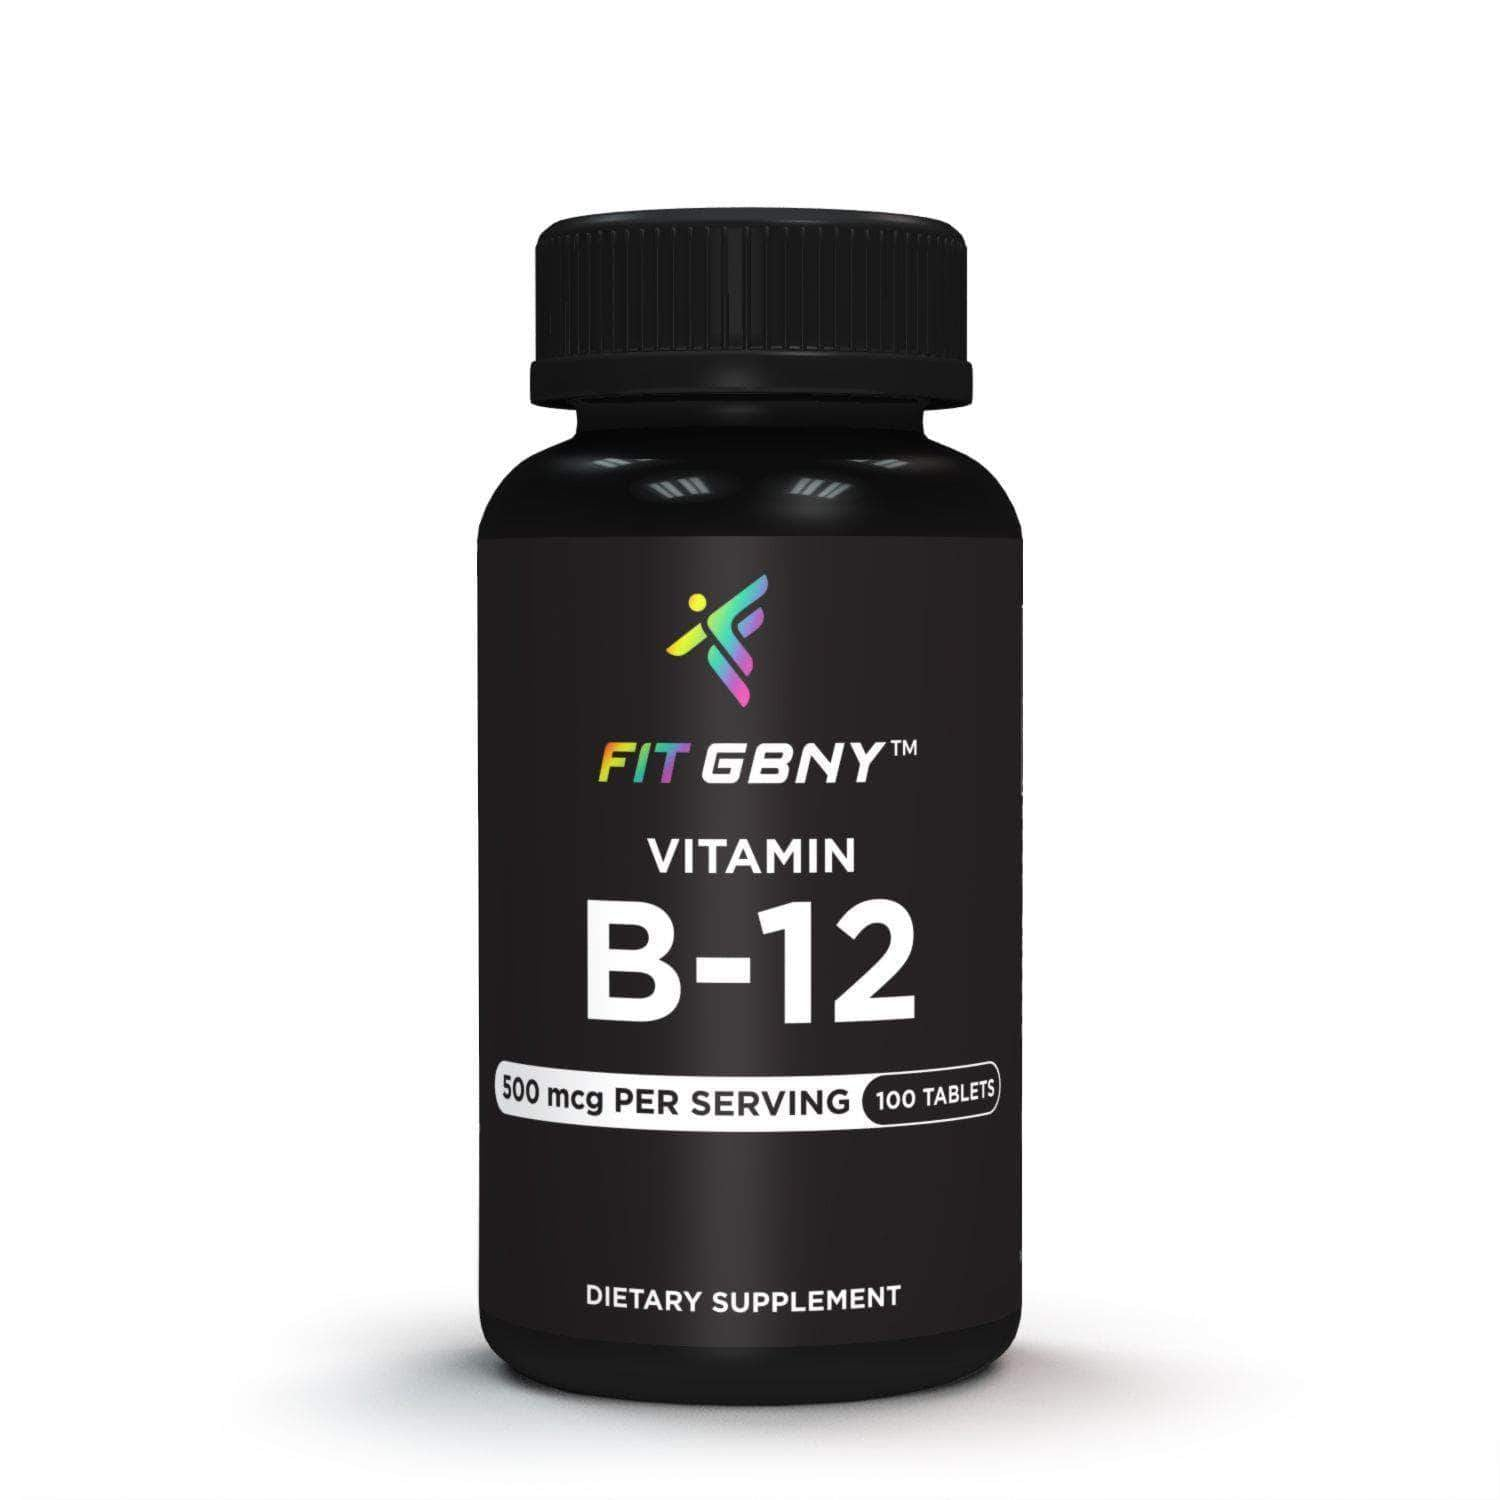 FIT GBNY Supplement Fit GBNY Vitamin B-12 500 mcg